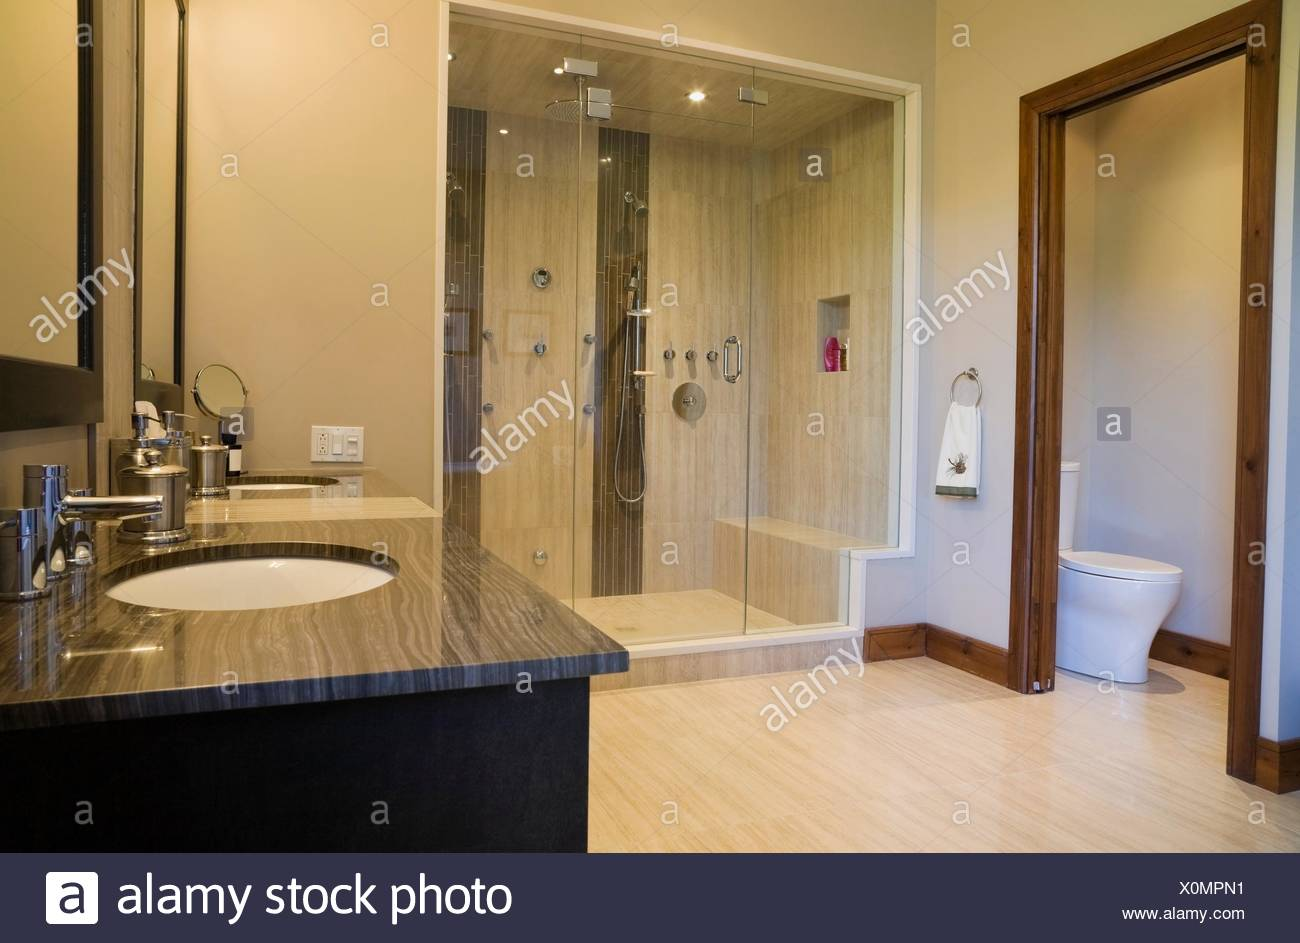 Main bathroom with double steam glass shower stall, vanity and ...